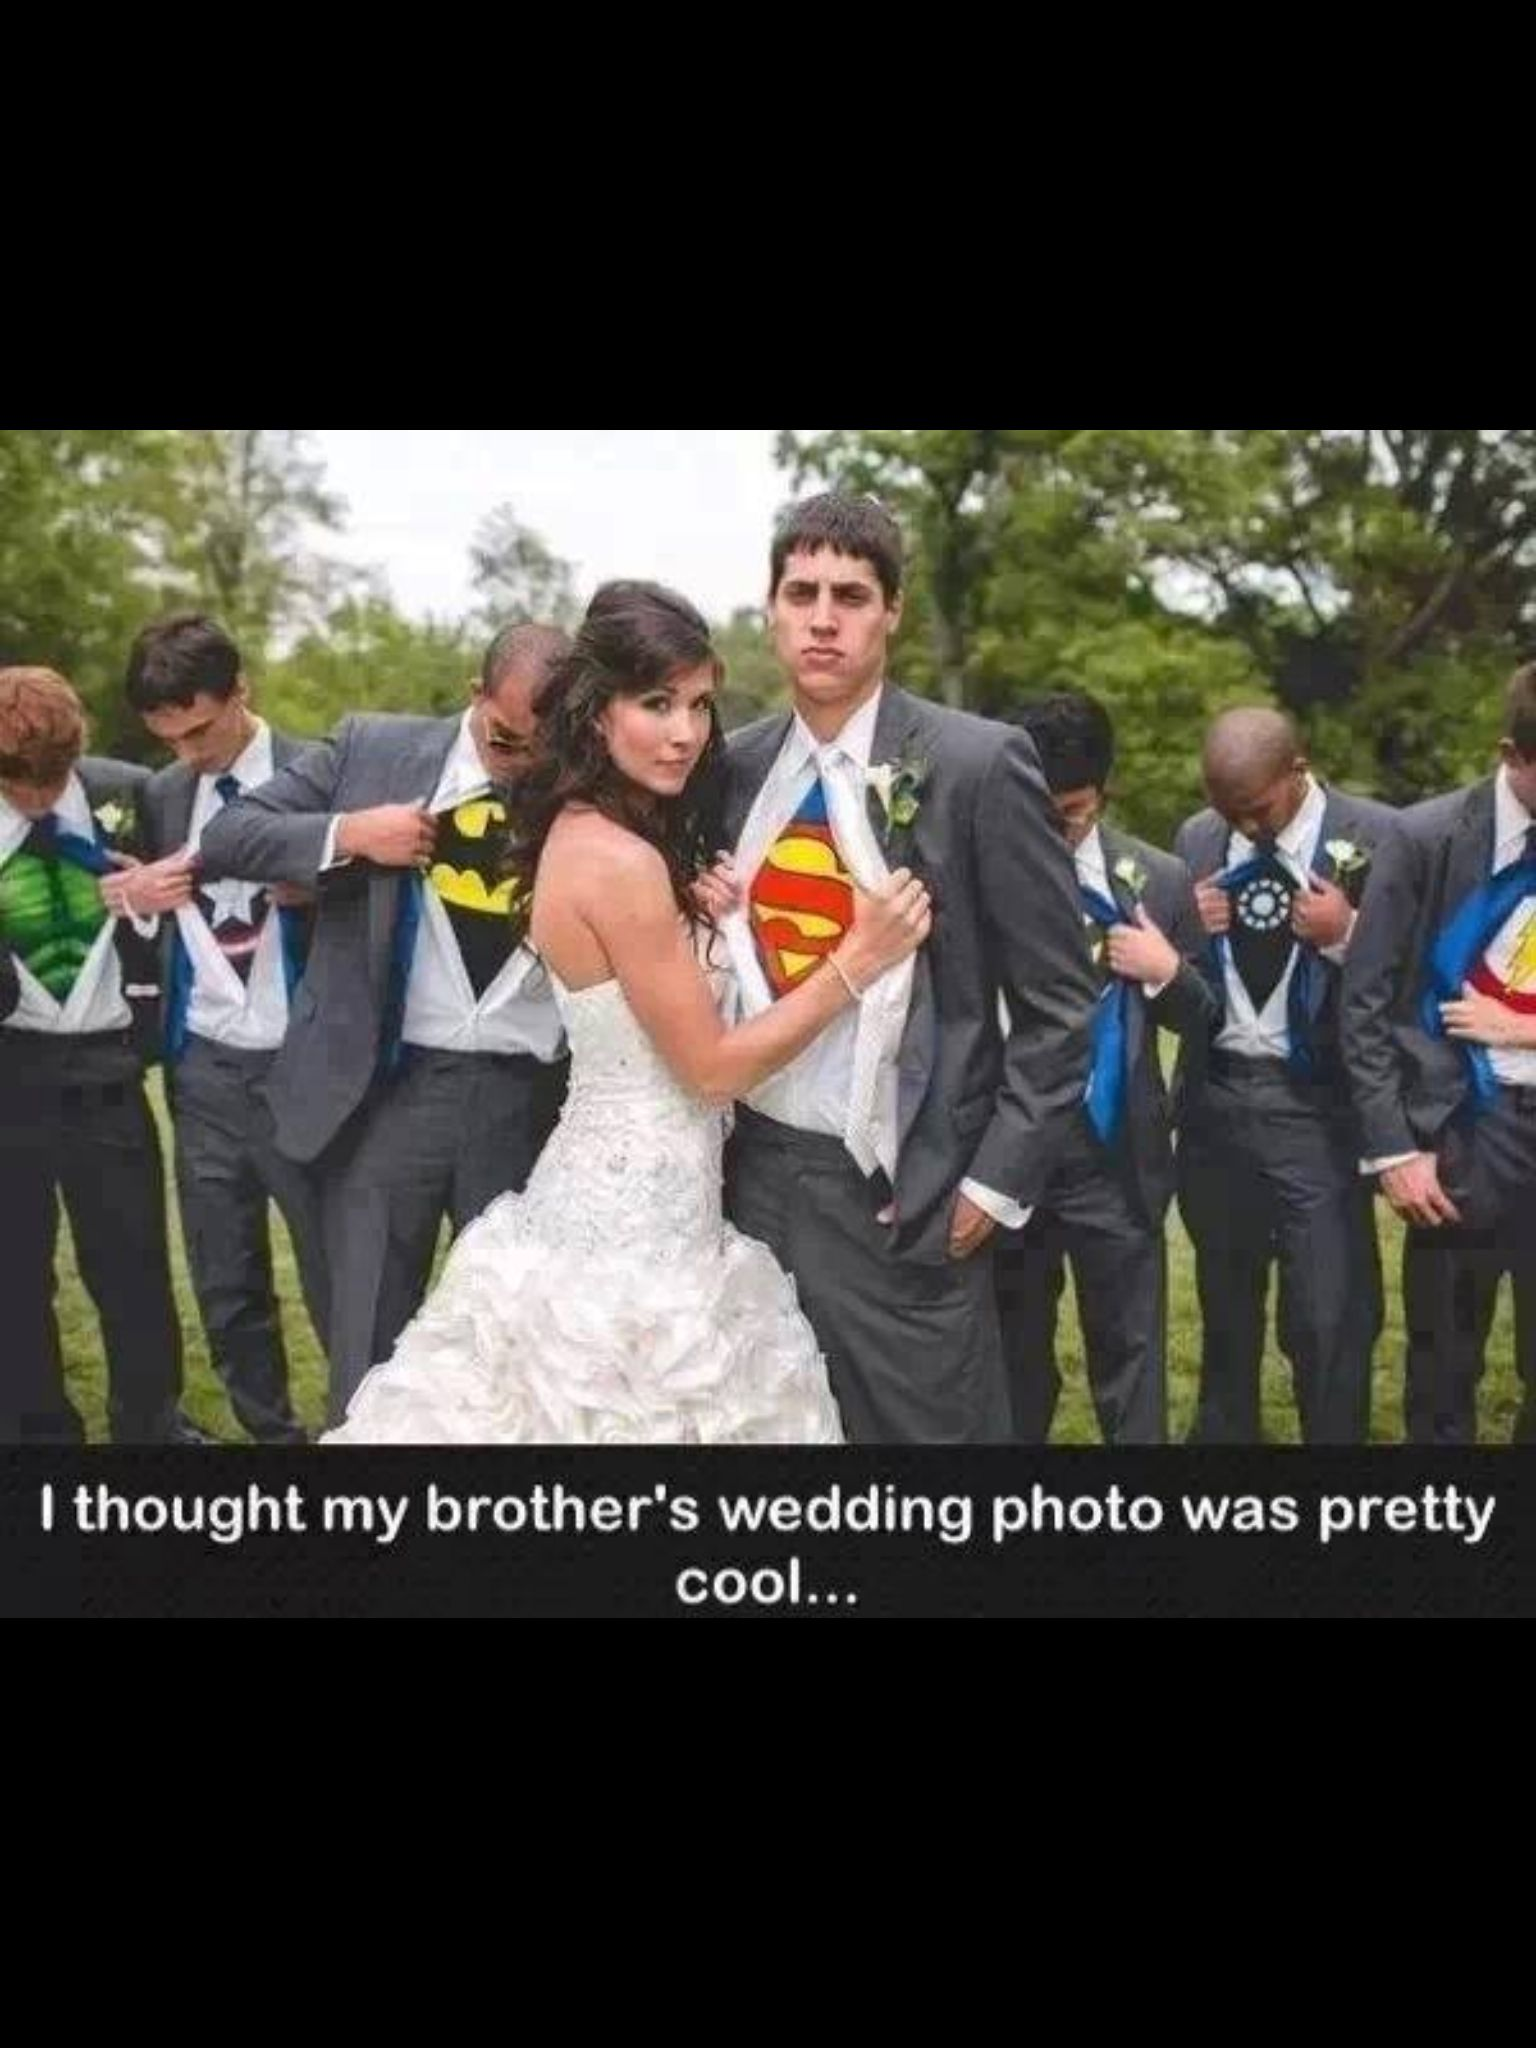 cool wedding shot ideas%0A I love how the groomsmen look like they have no idea which super hero  they u    re meant to be  But most importantly the groom knows hes her hero  u   d